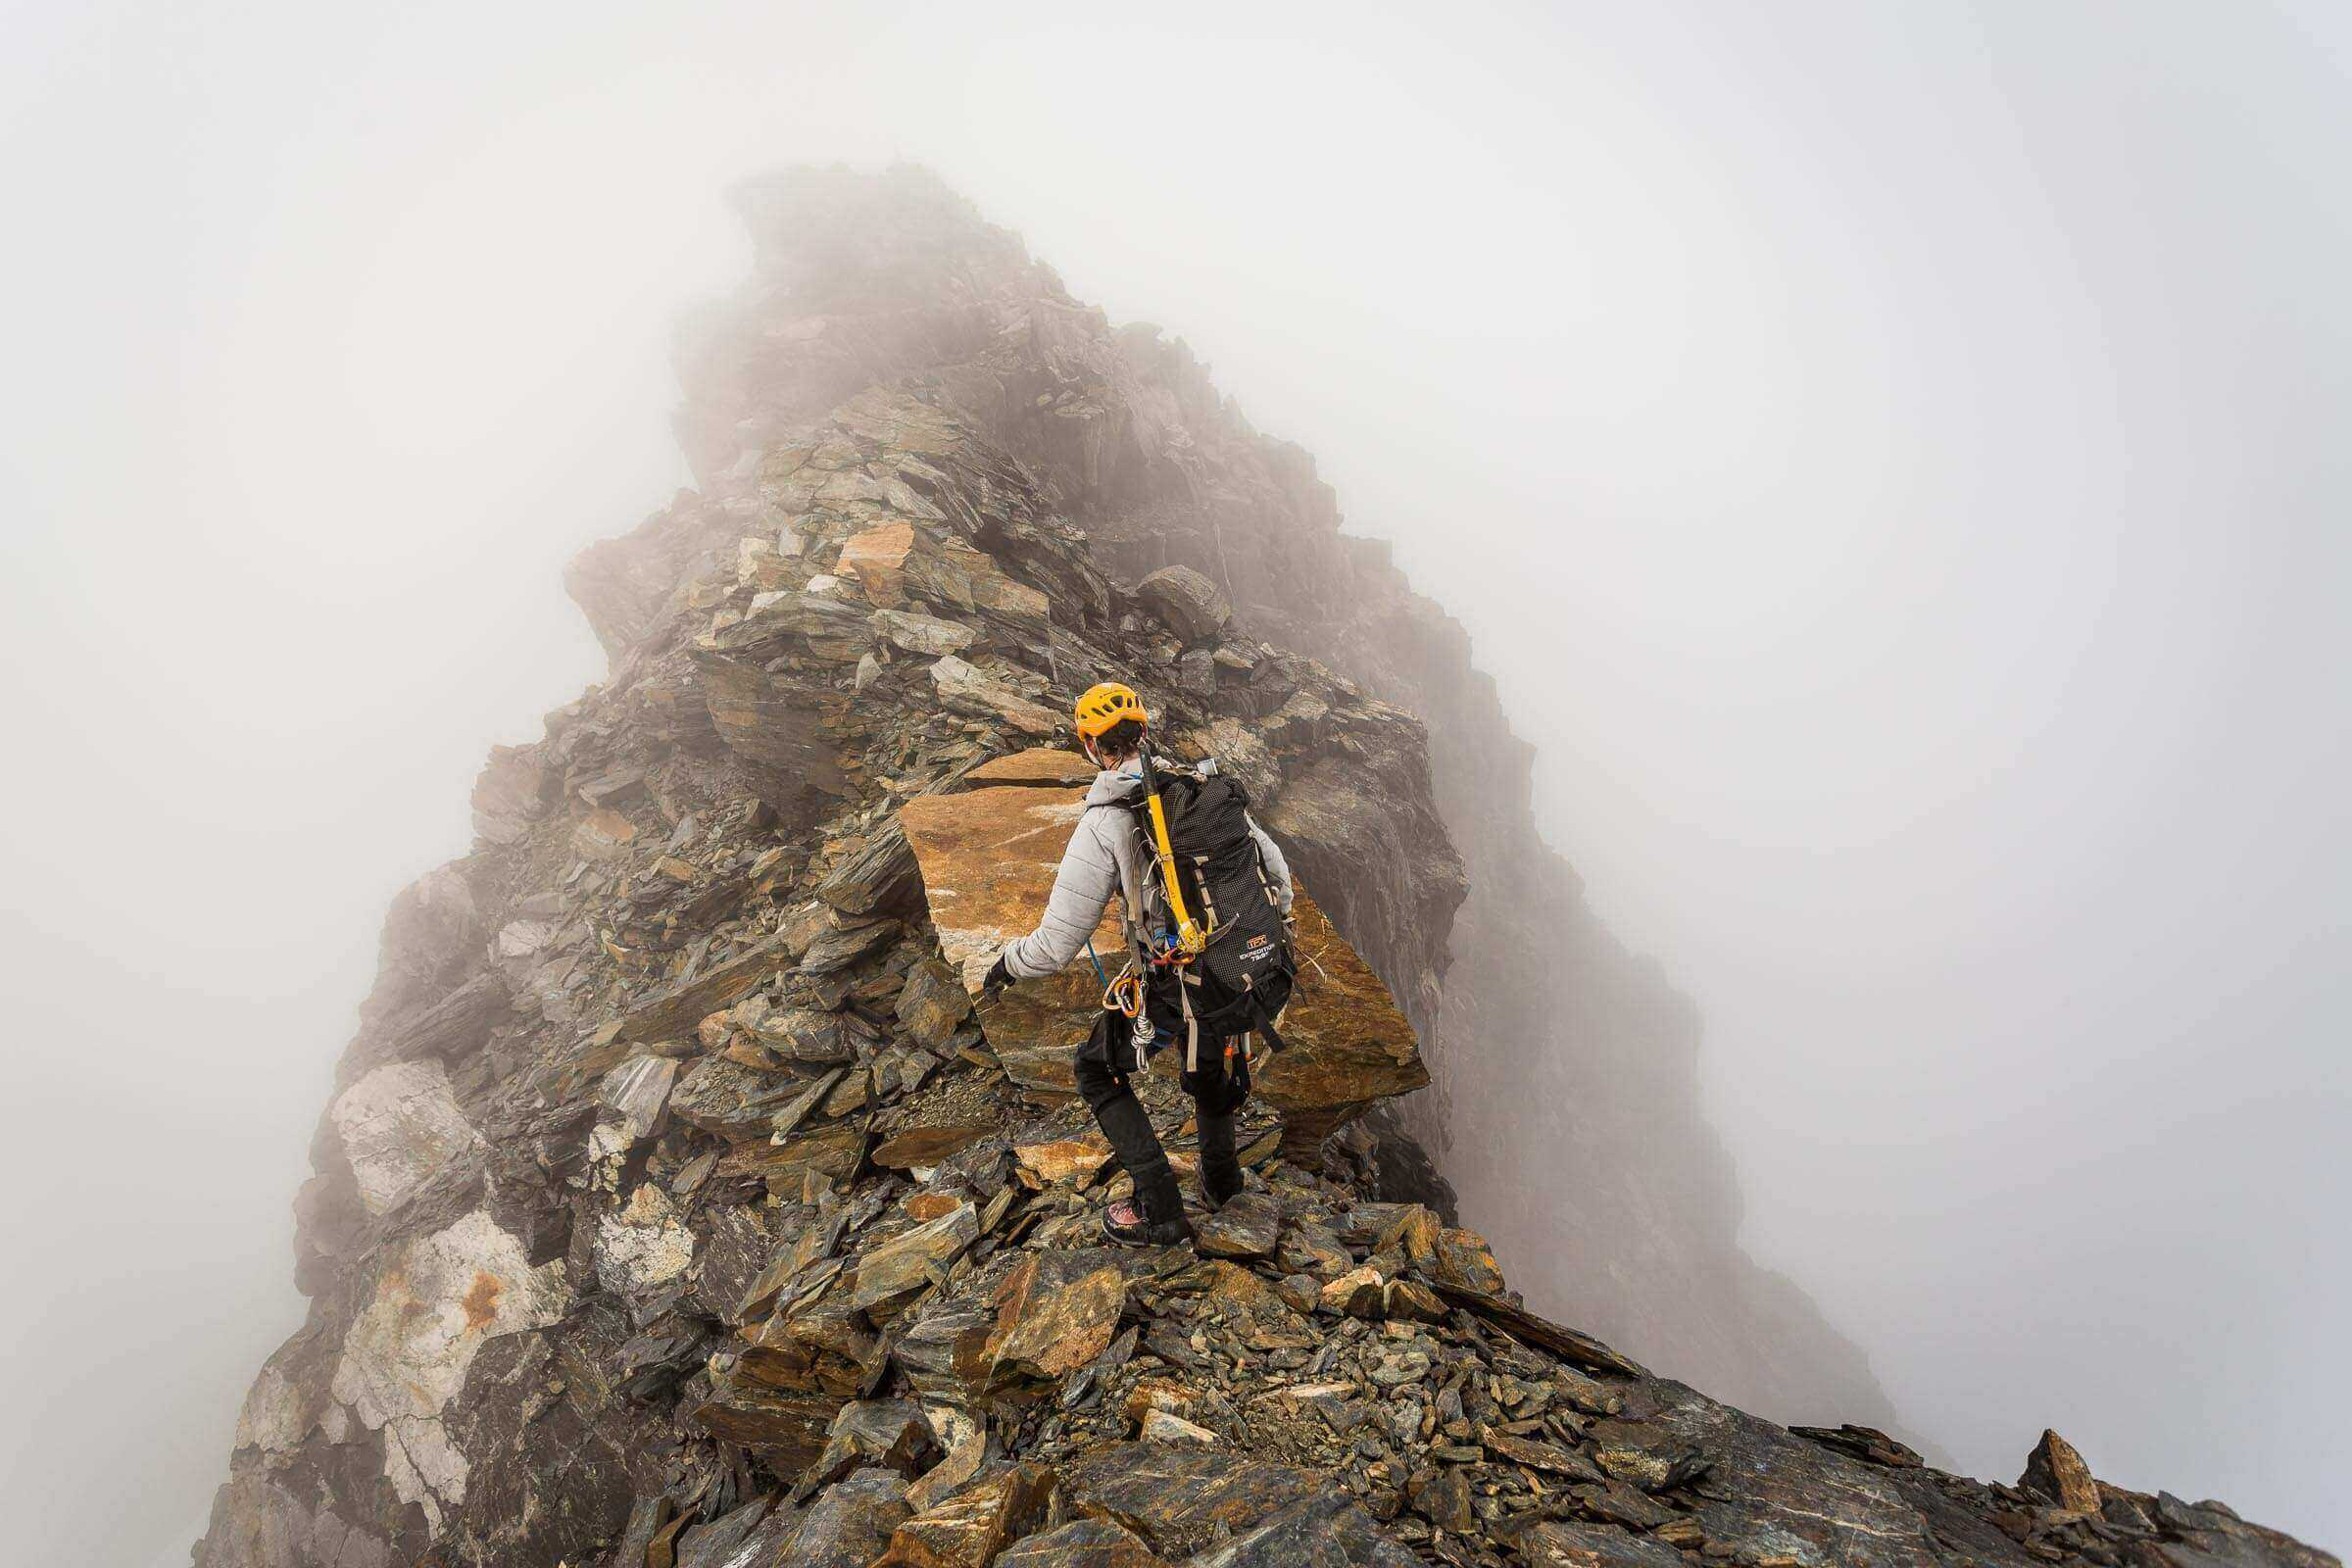 Scott Amjah traverses towards the summit of Mount Brewster in the New Zealand Alps